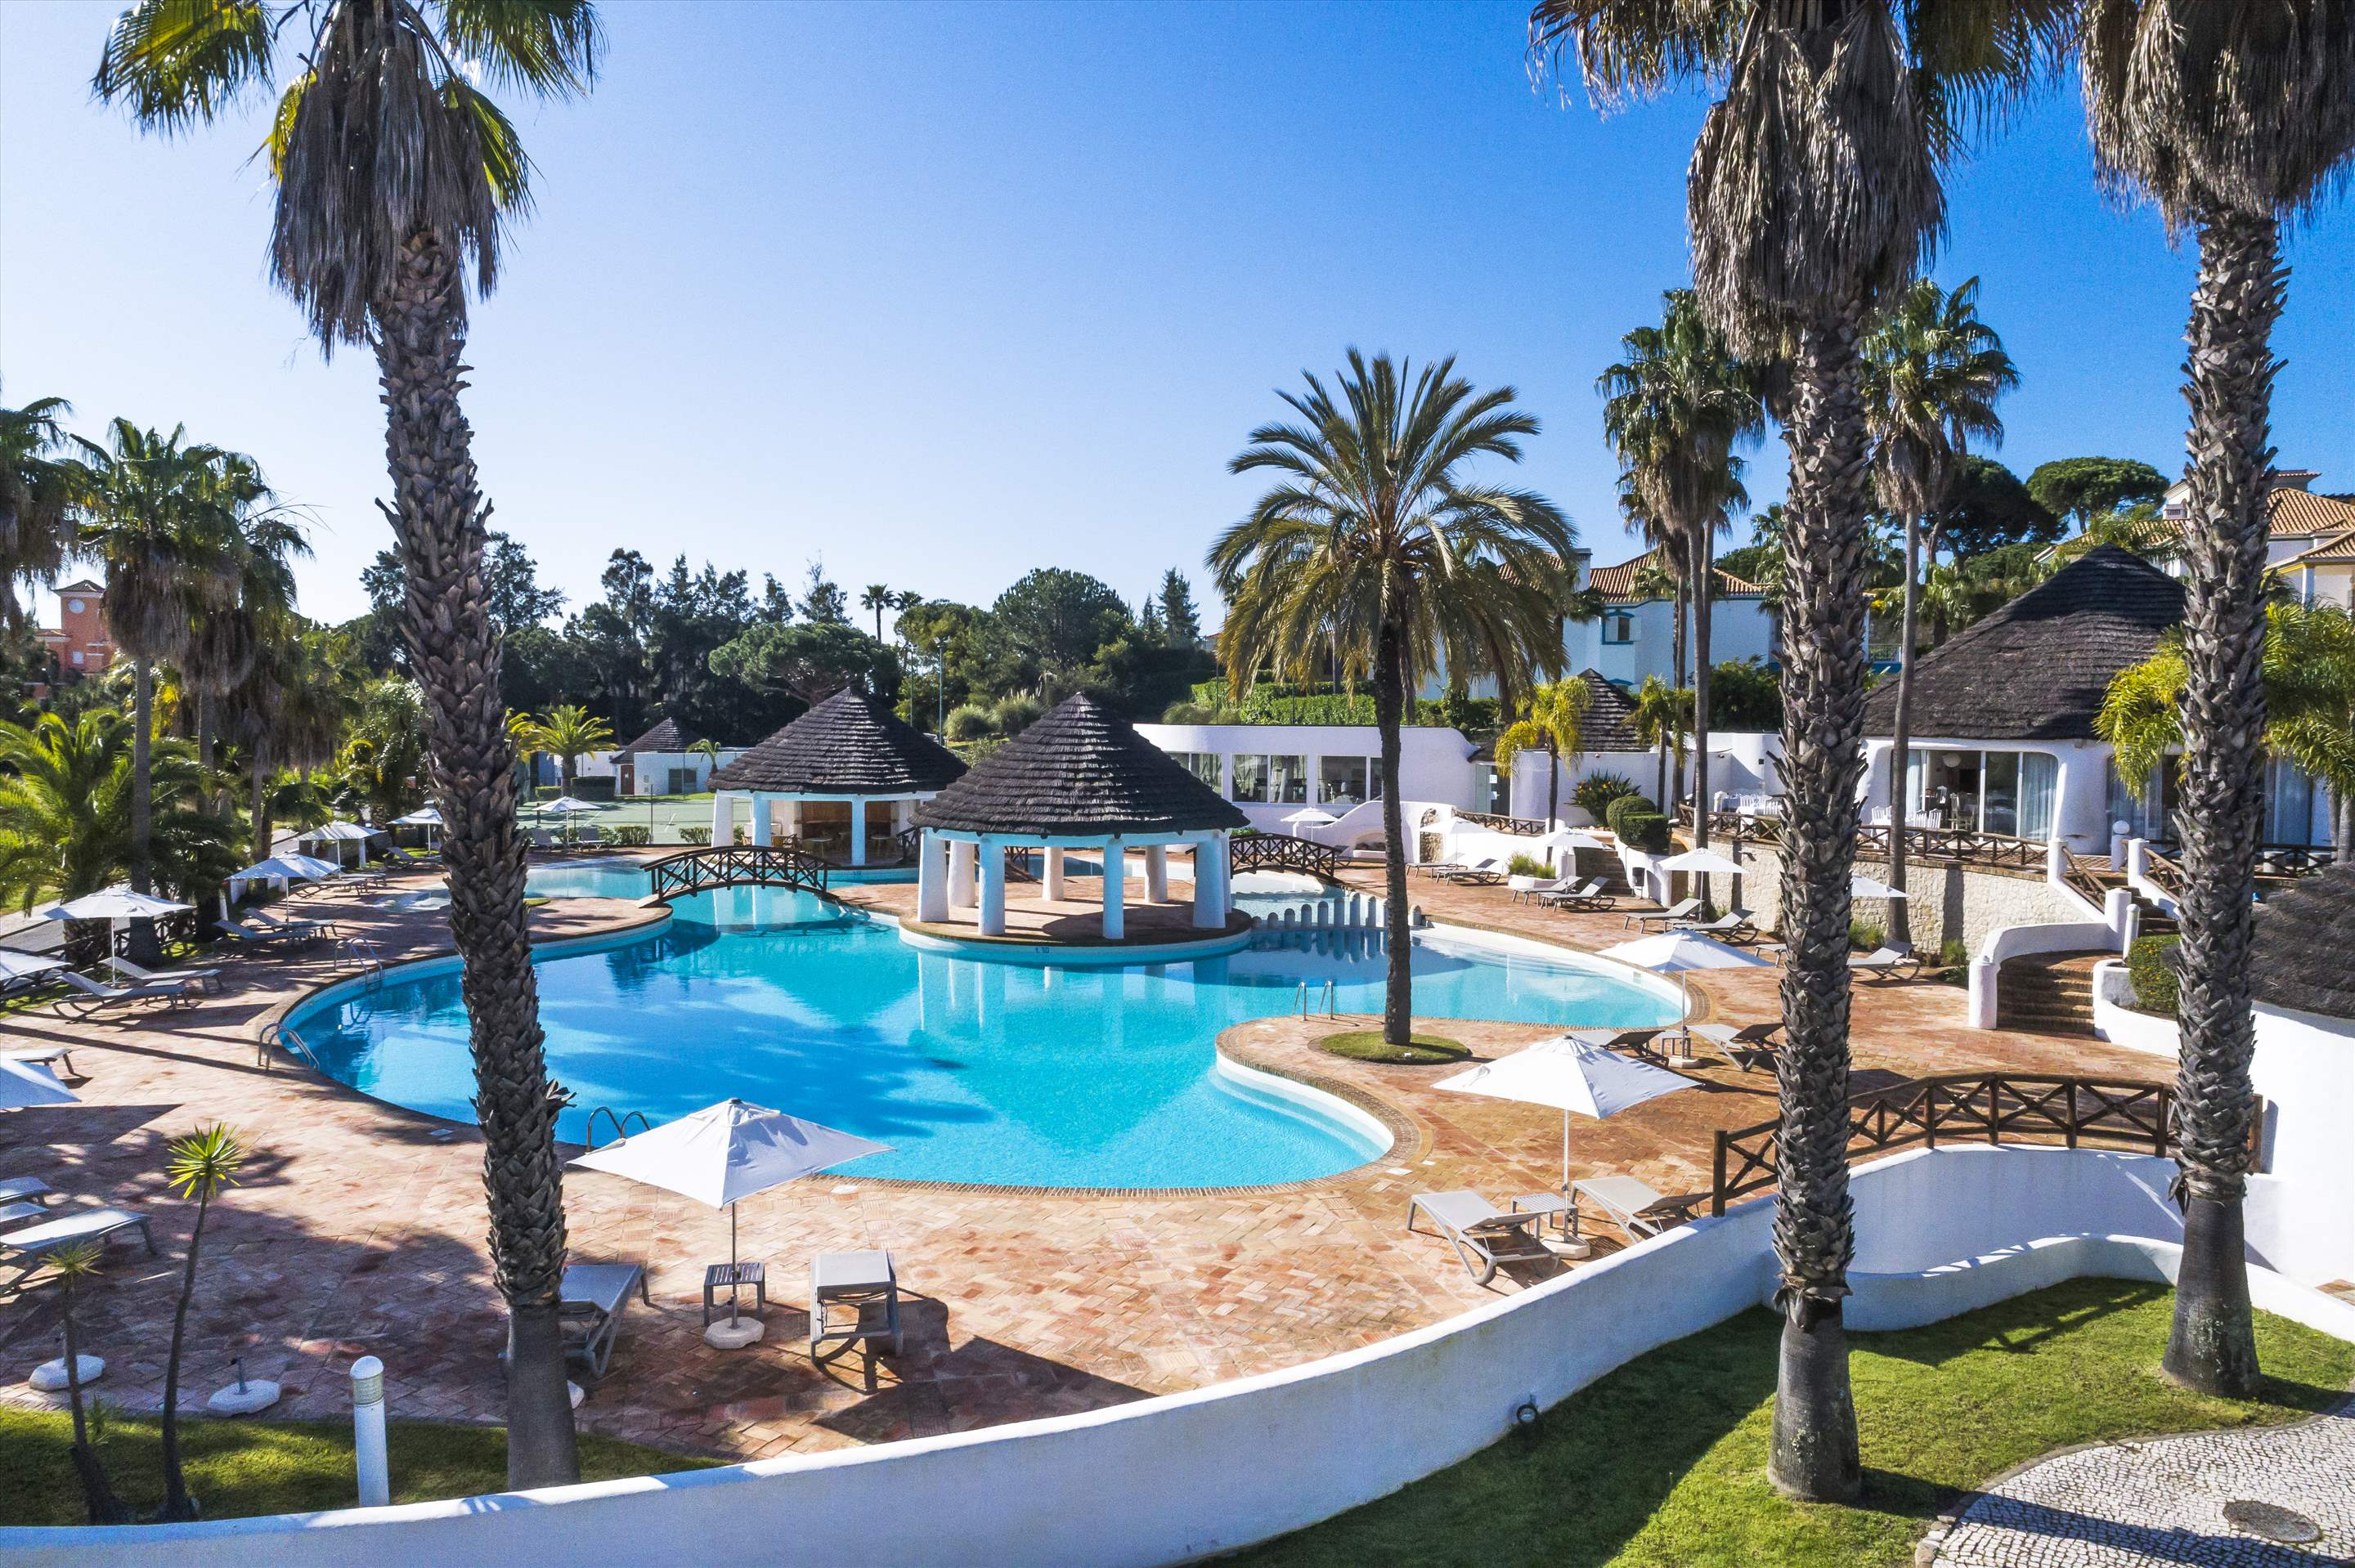 Encosta do Lago 2 Bedroom Apt, Private Pool, 2 bedroom apartment in Encosta do Lago Resort, Algarve Photo #27